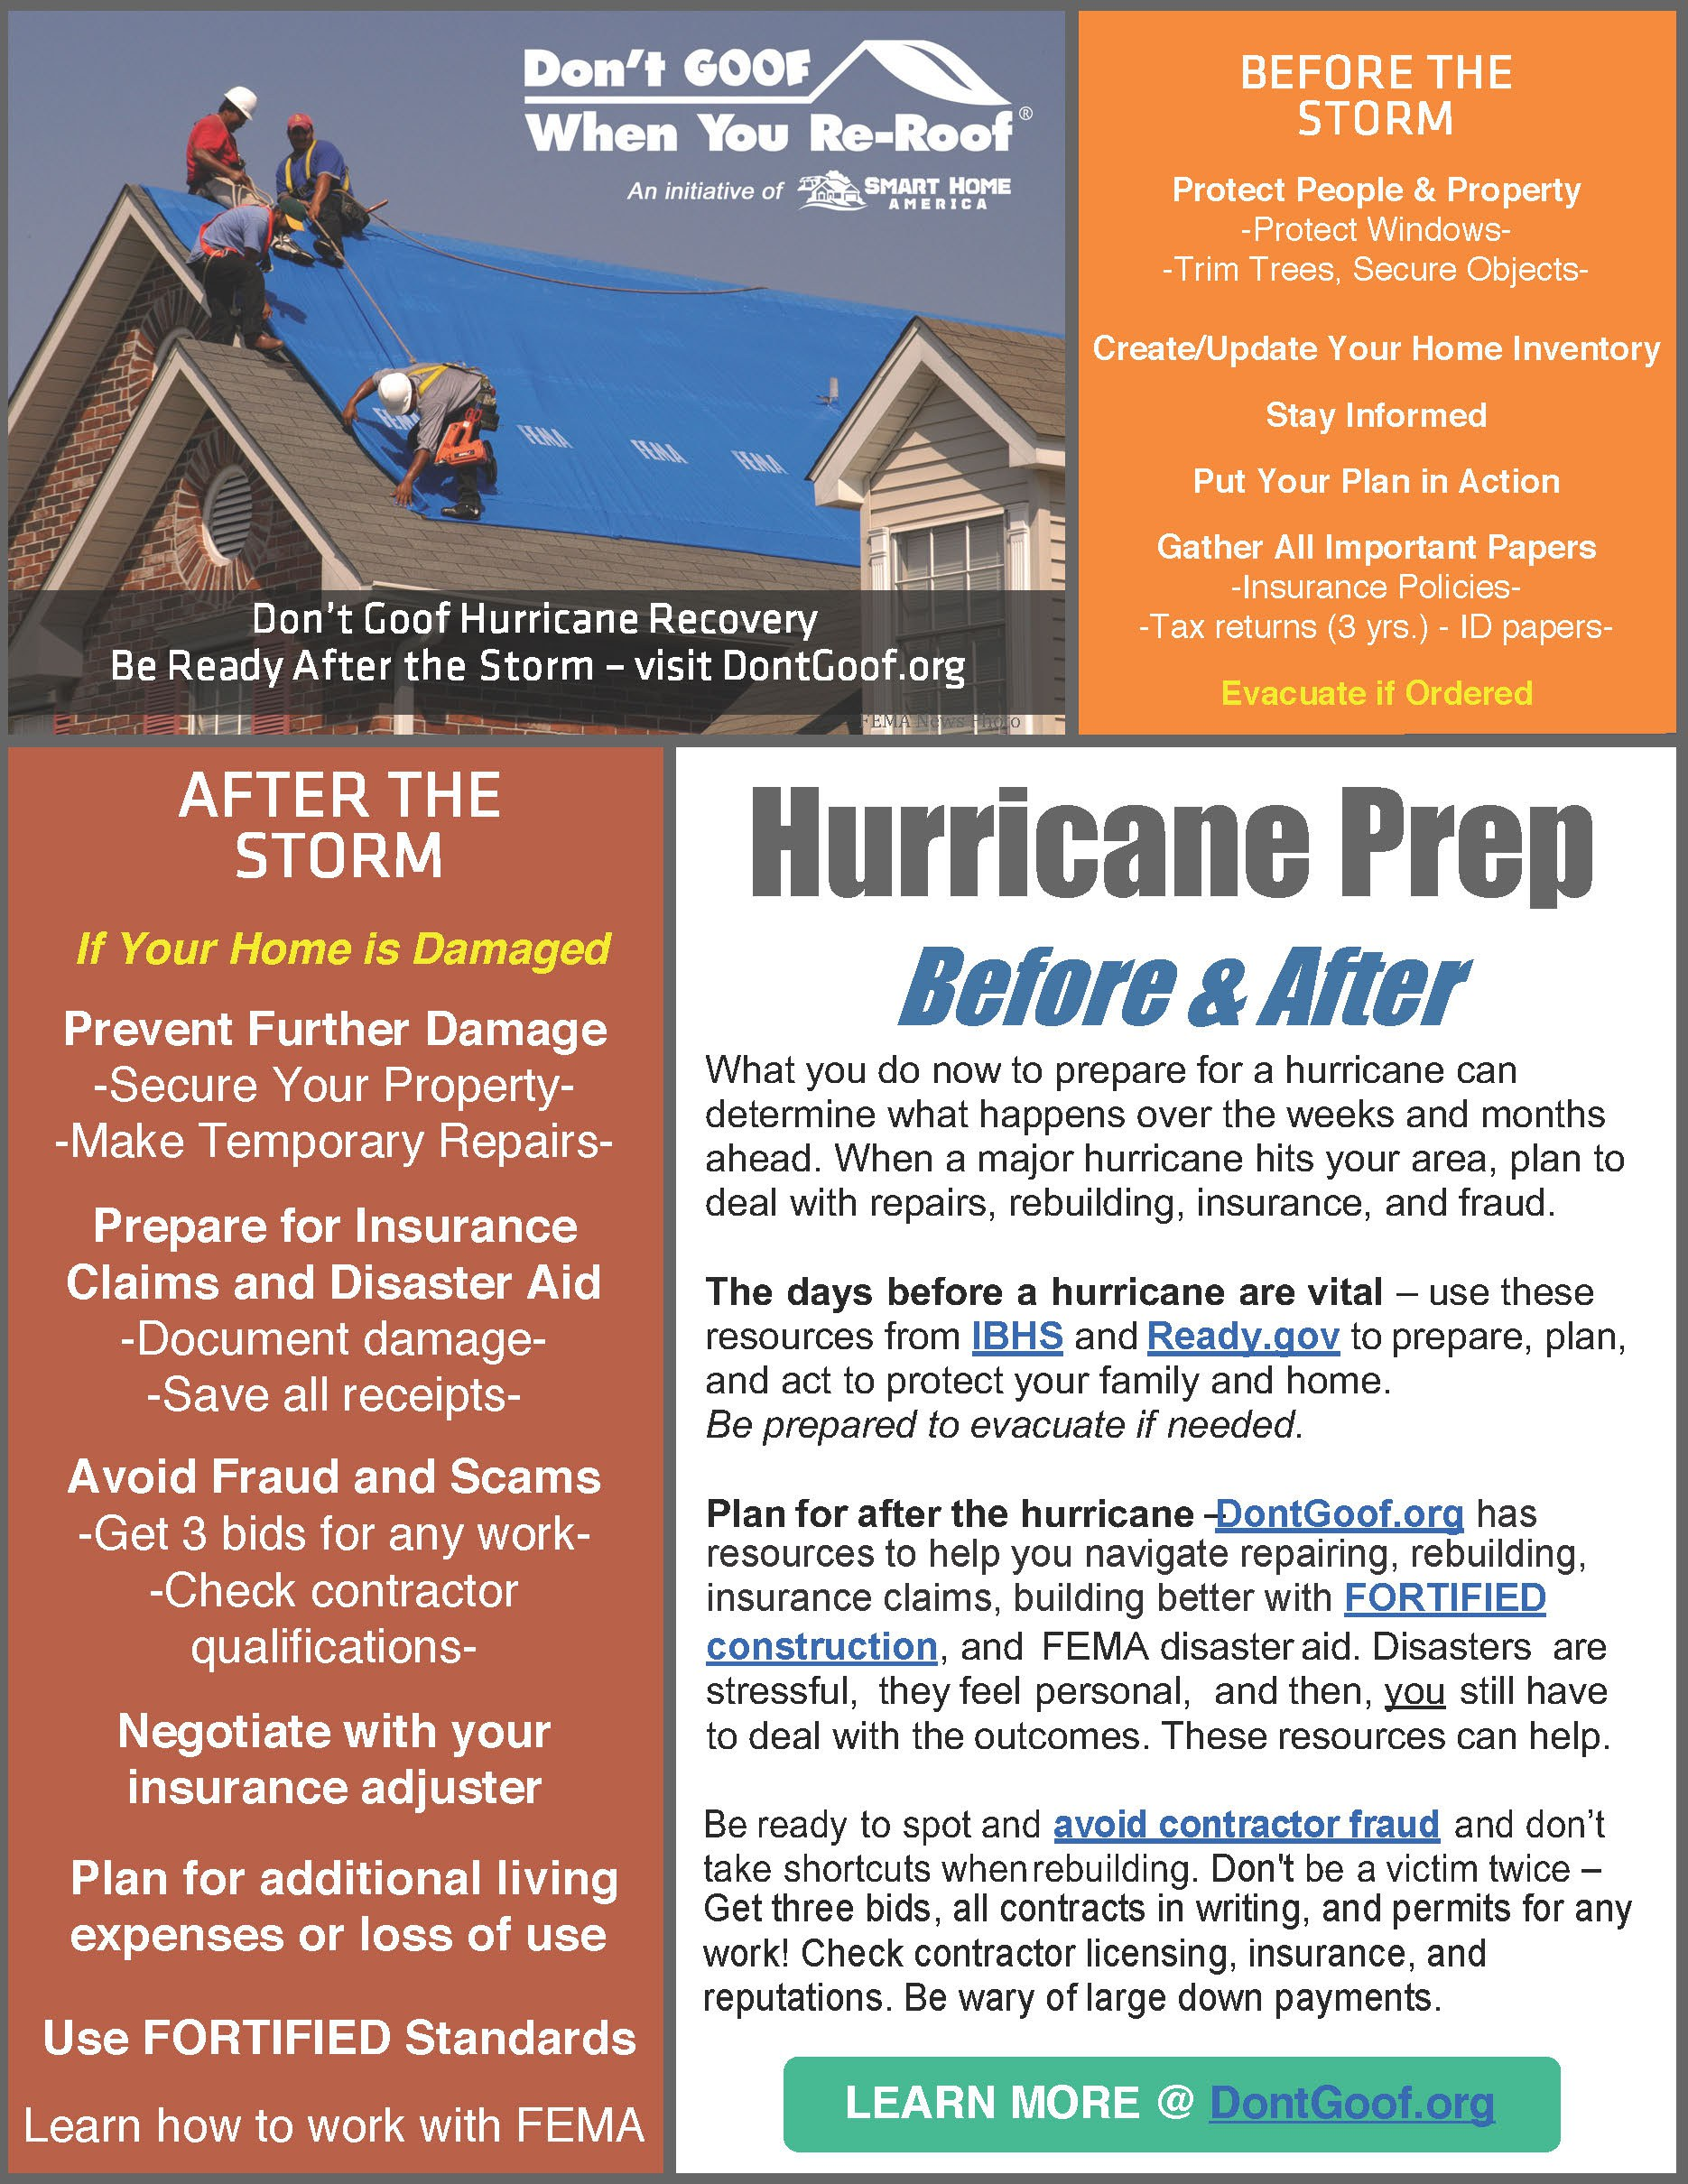 Prepare For A Hurricane   Plan For After The Storm  Dont Goof